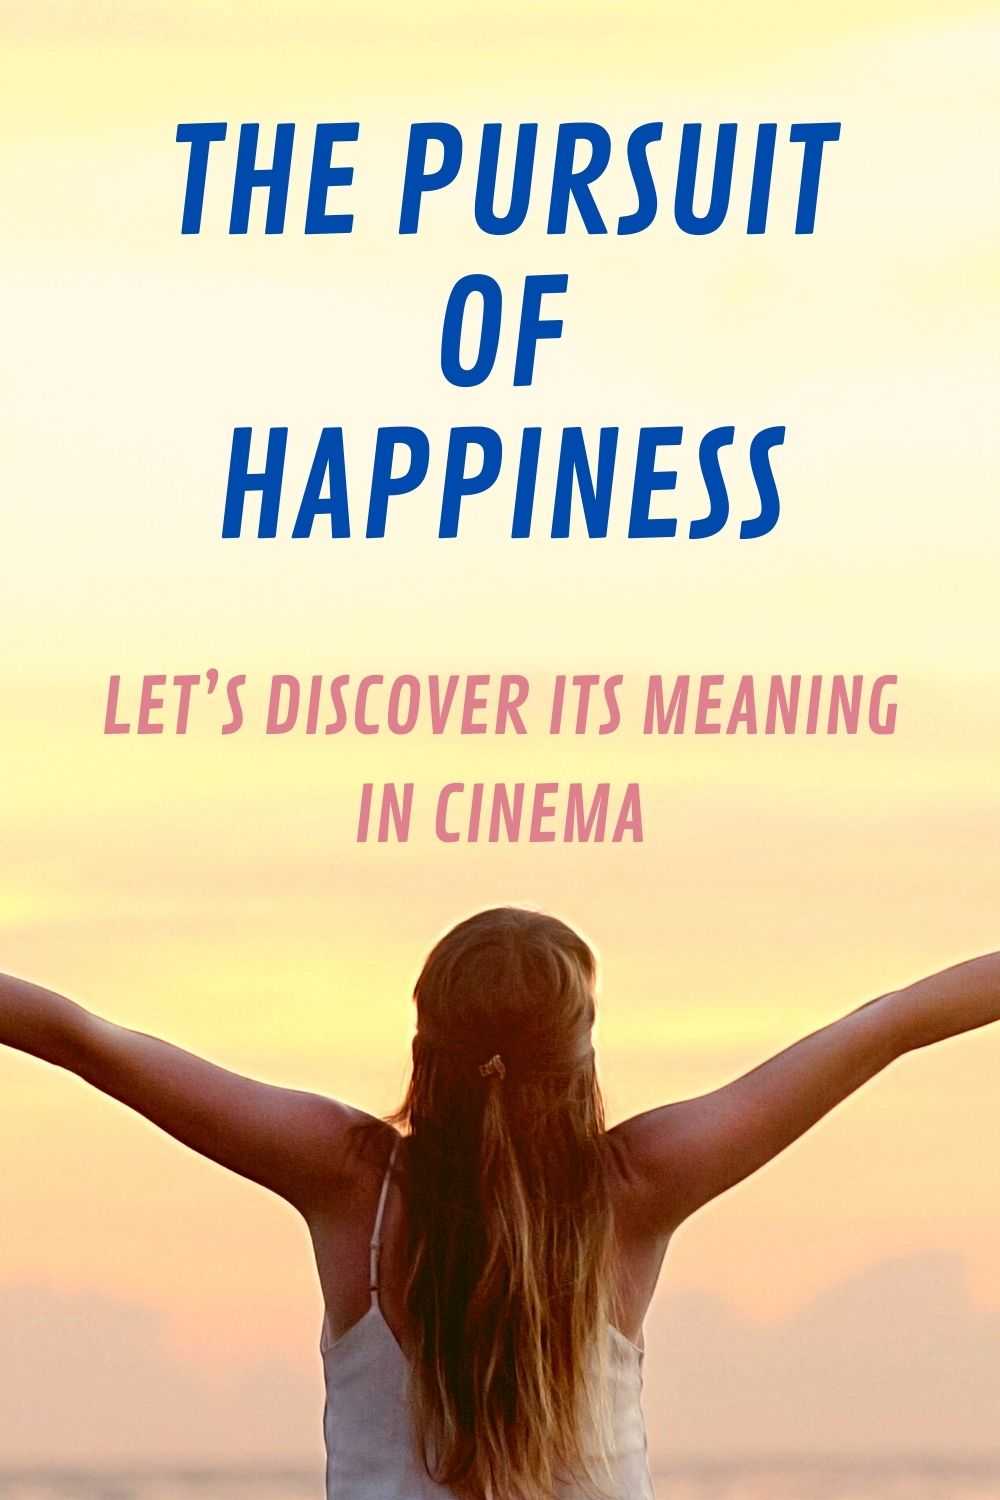 The pursuit of happiness makes us all brothers and sisters. And what's better than three good movies to get at least a taste? #MOVIES